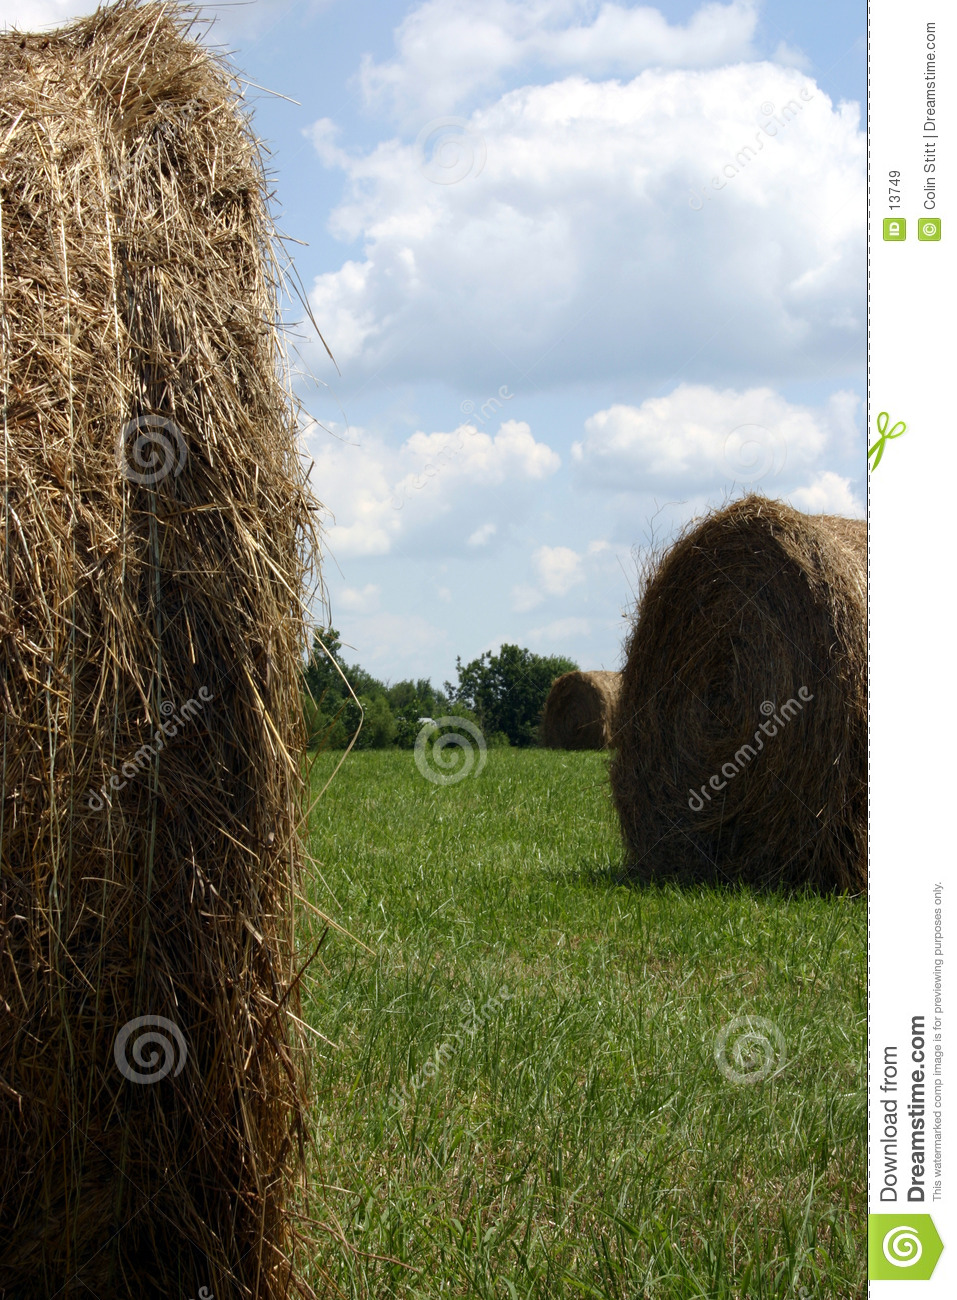 Between the bales